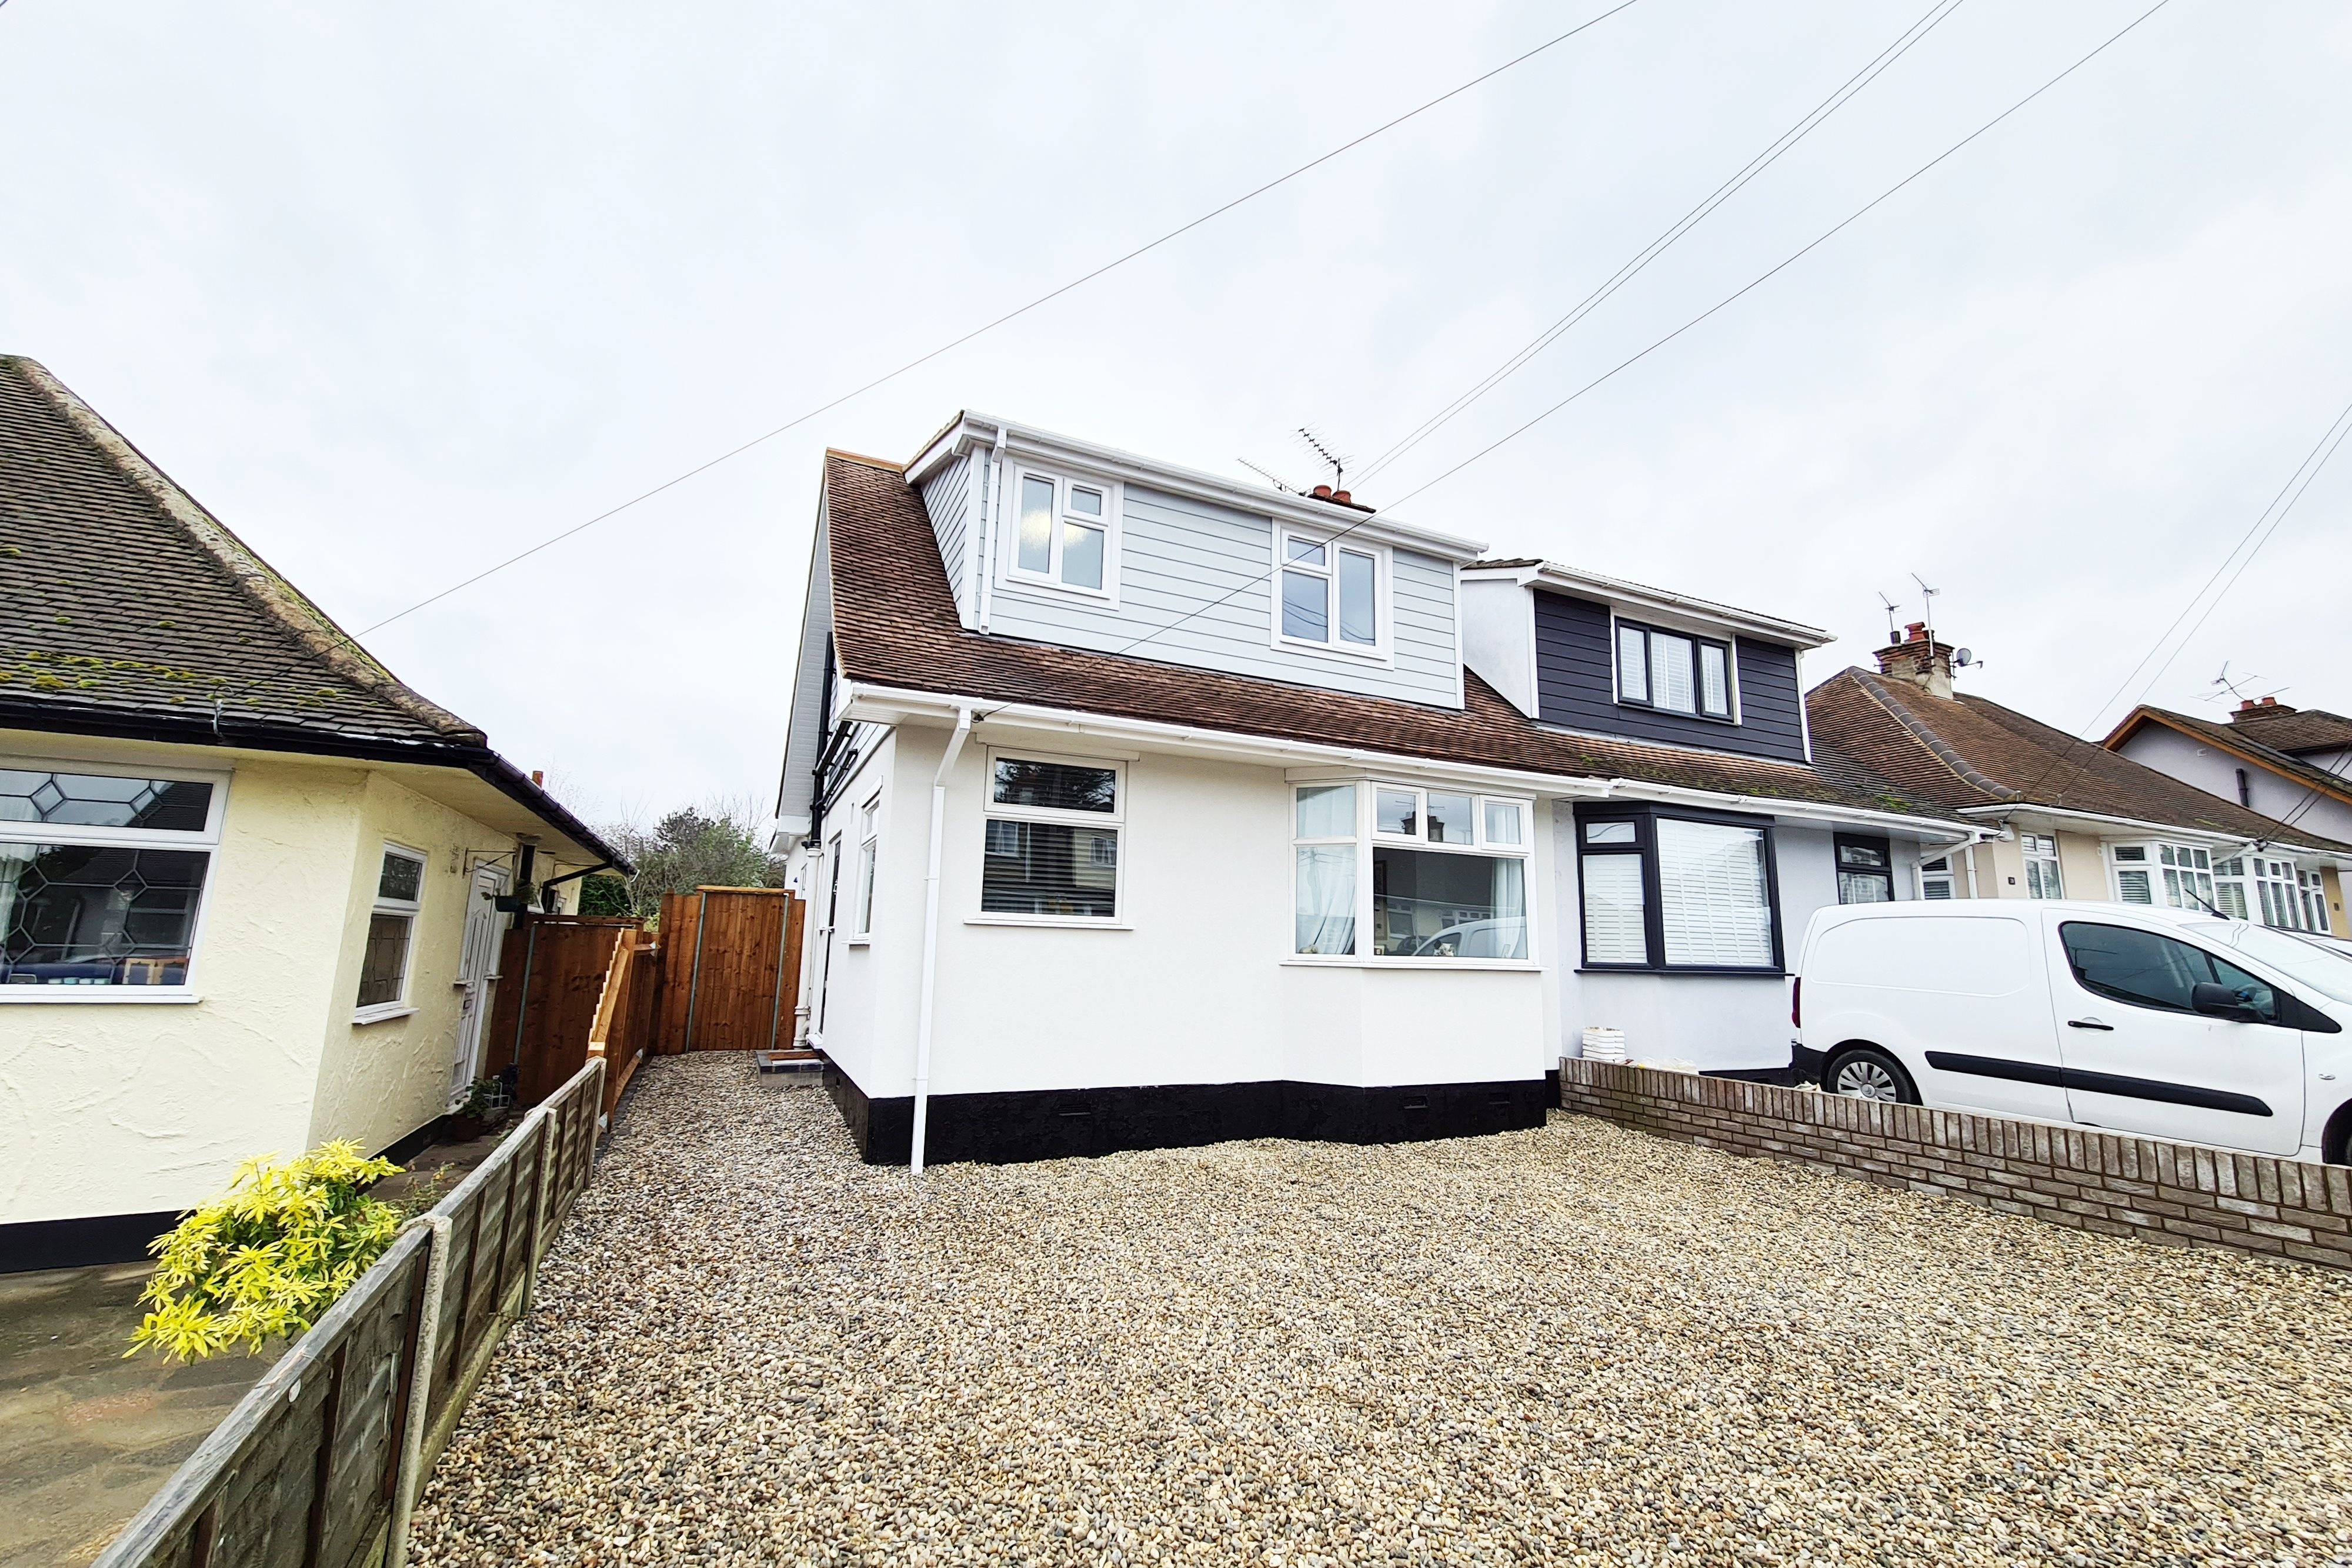 4 bed house for sale in Oakwood Road, Rayleigh, SS6